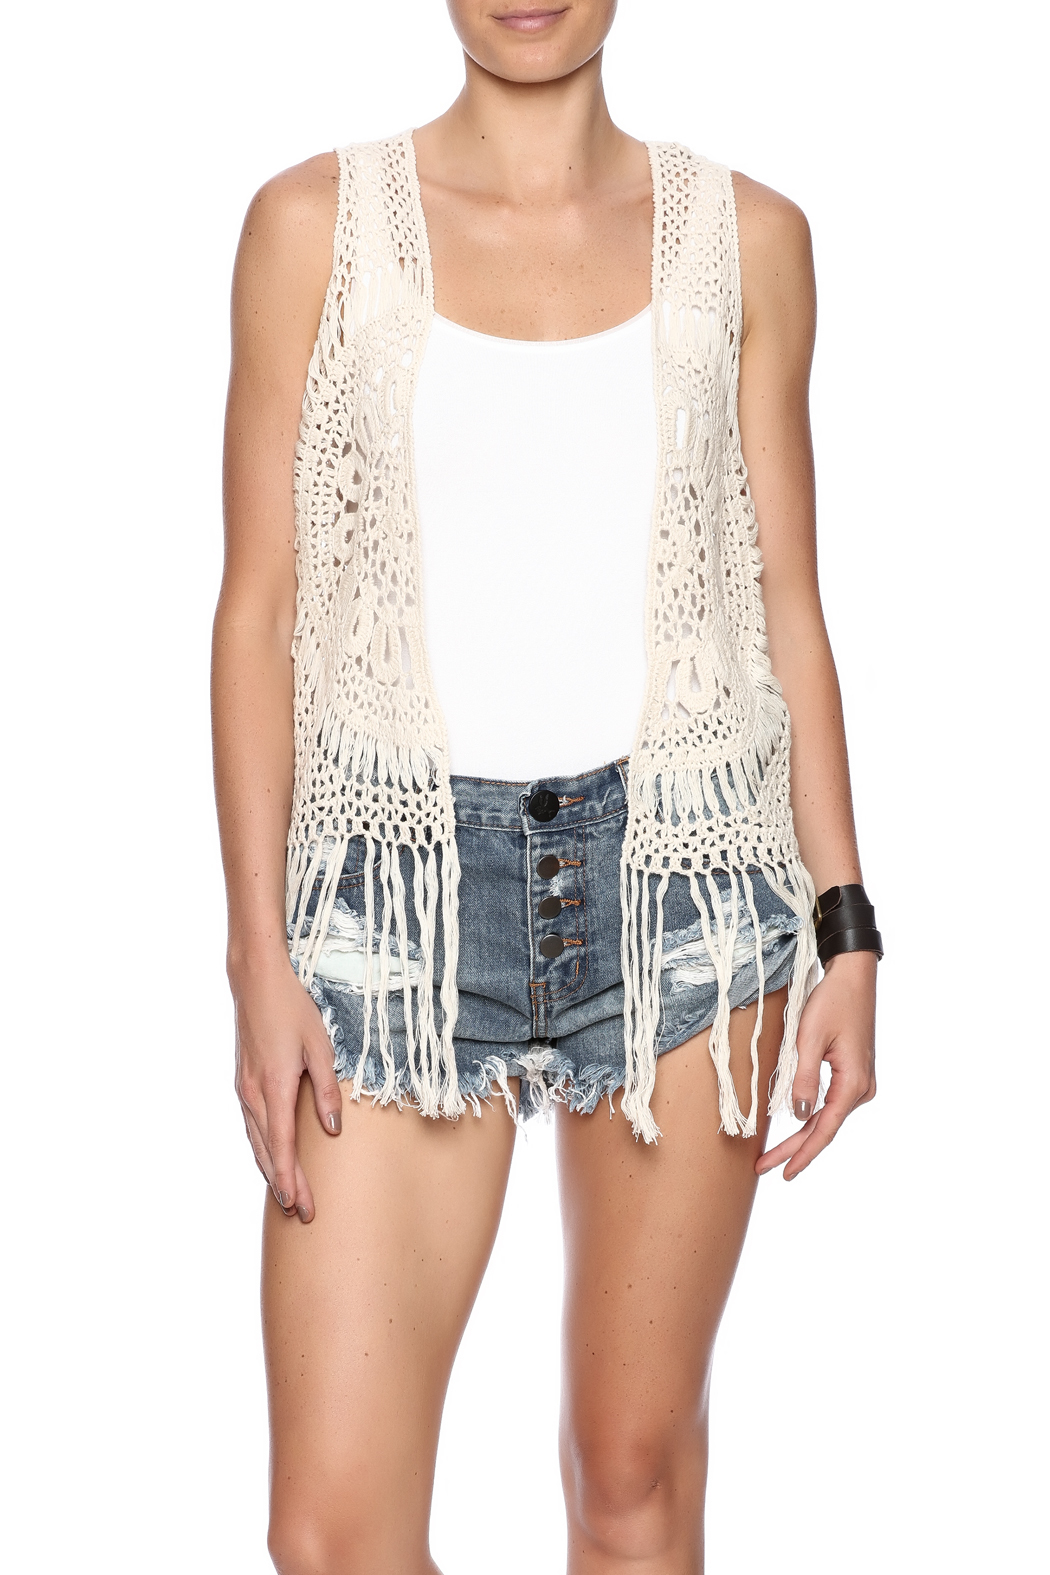 Love By Design Crochet Fringe Vest From Los Angeles By Ashleys